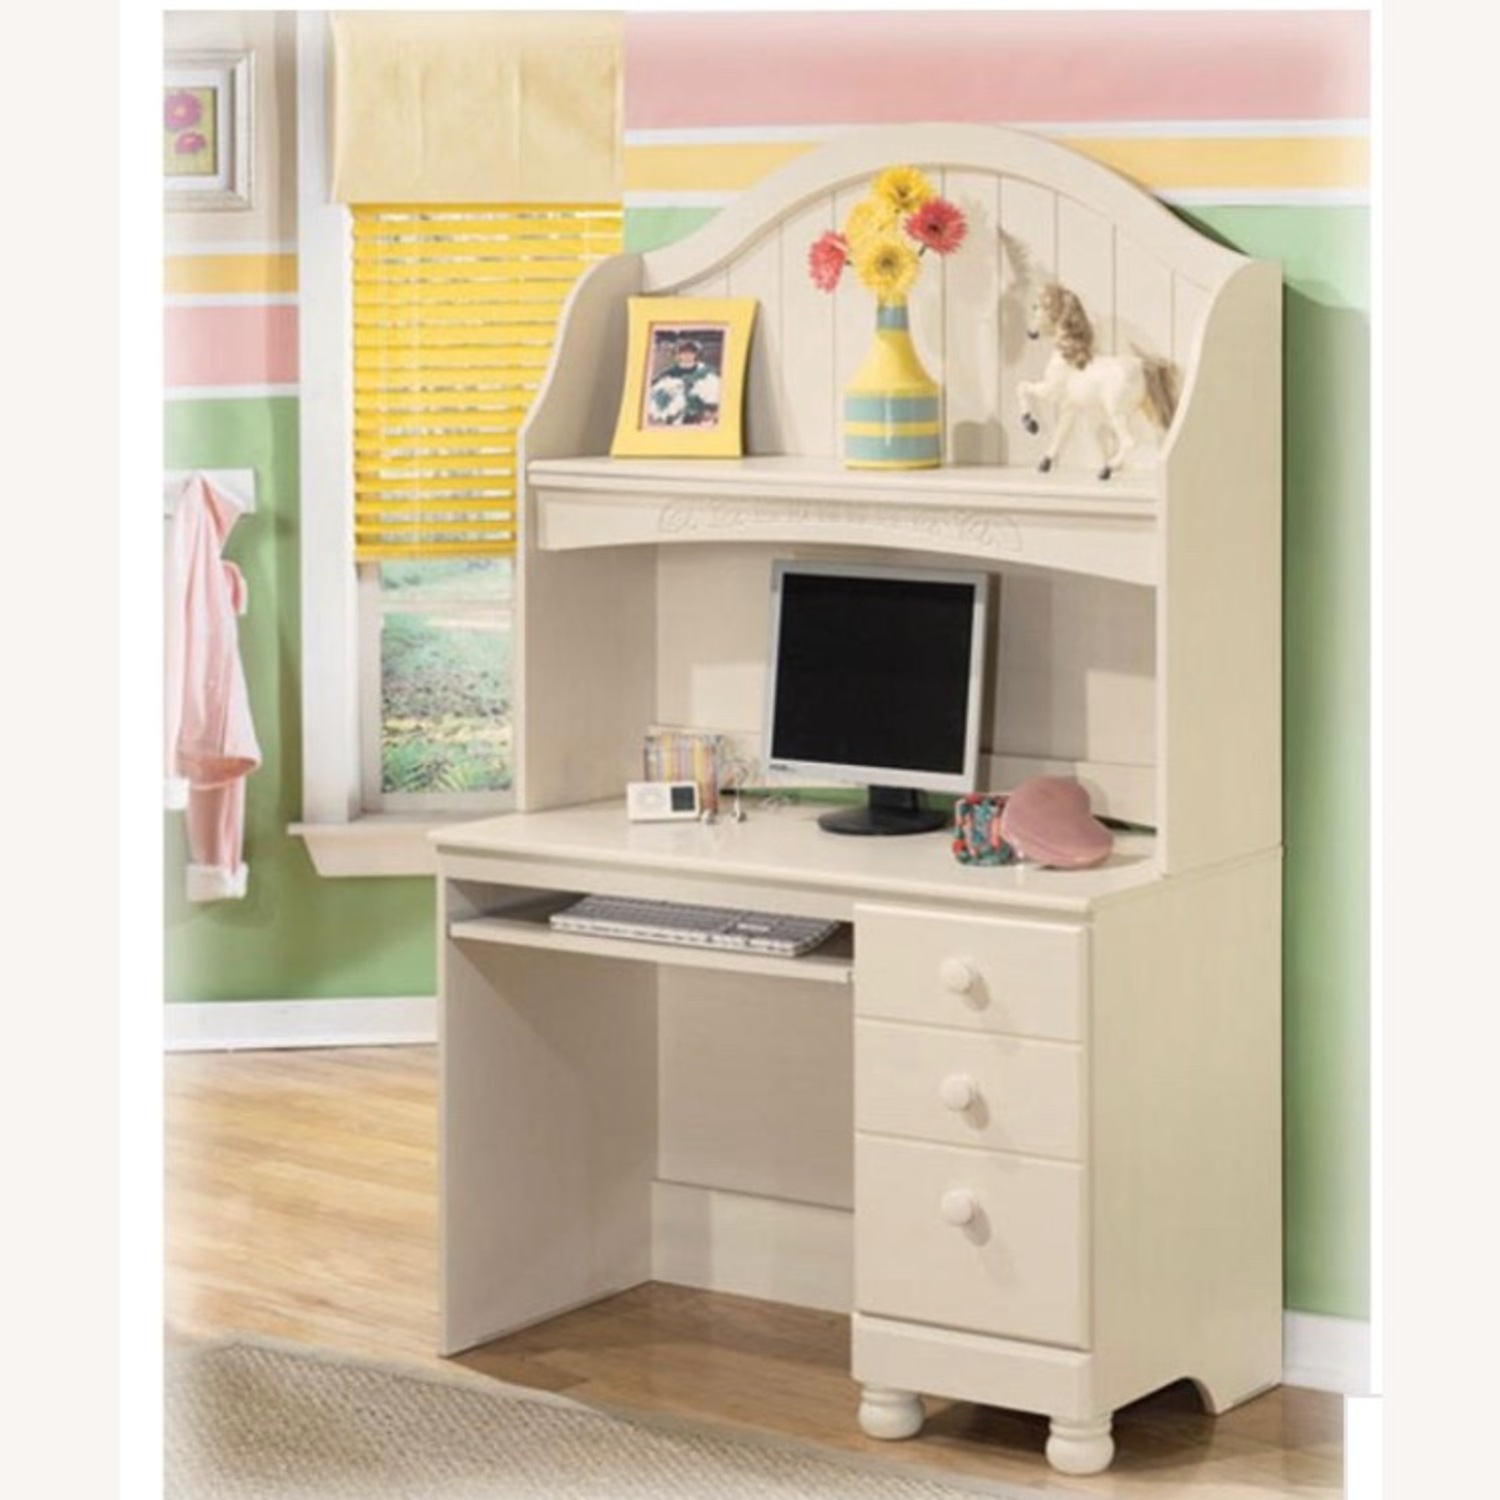 Ashley Furniture Cottage Retreat Bedroom Desk Hutch - image-6